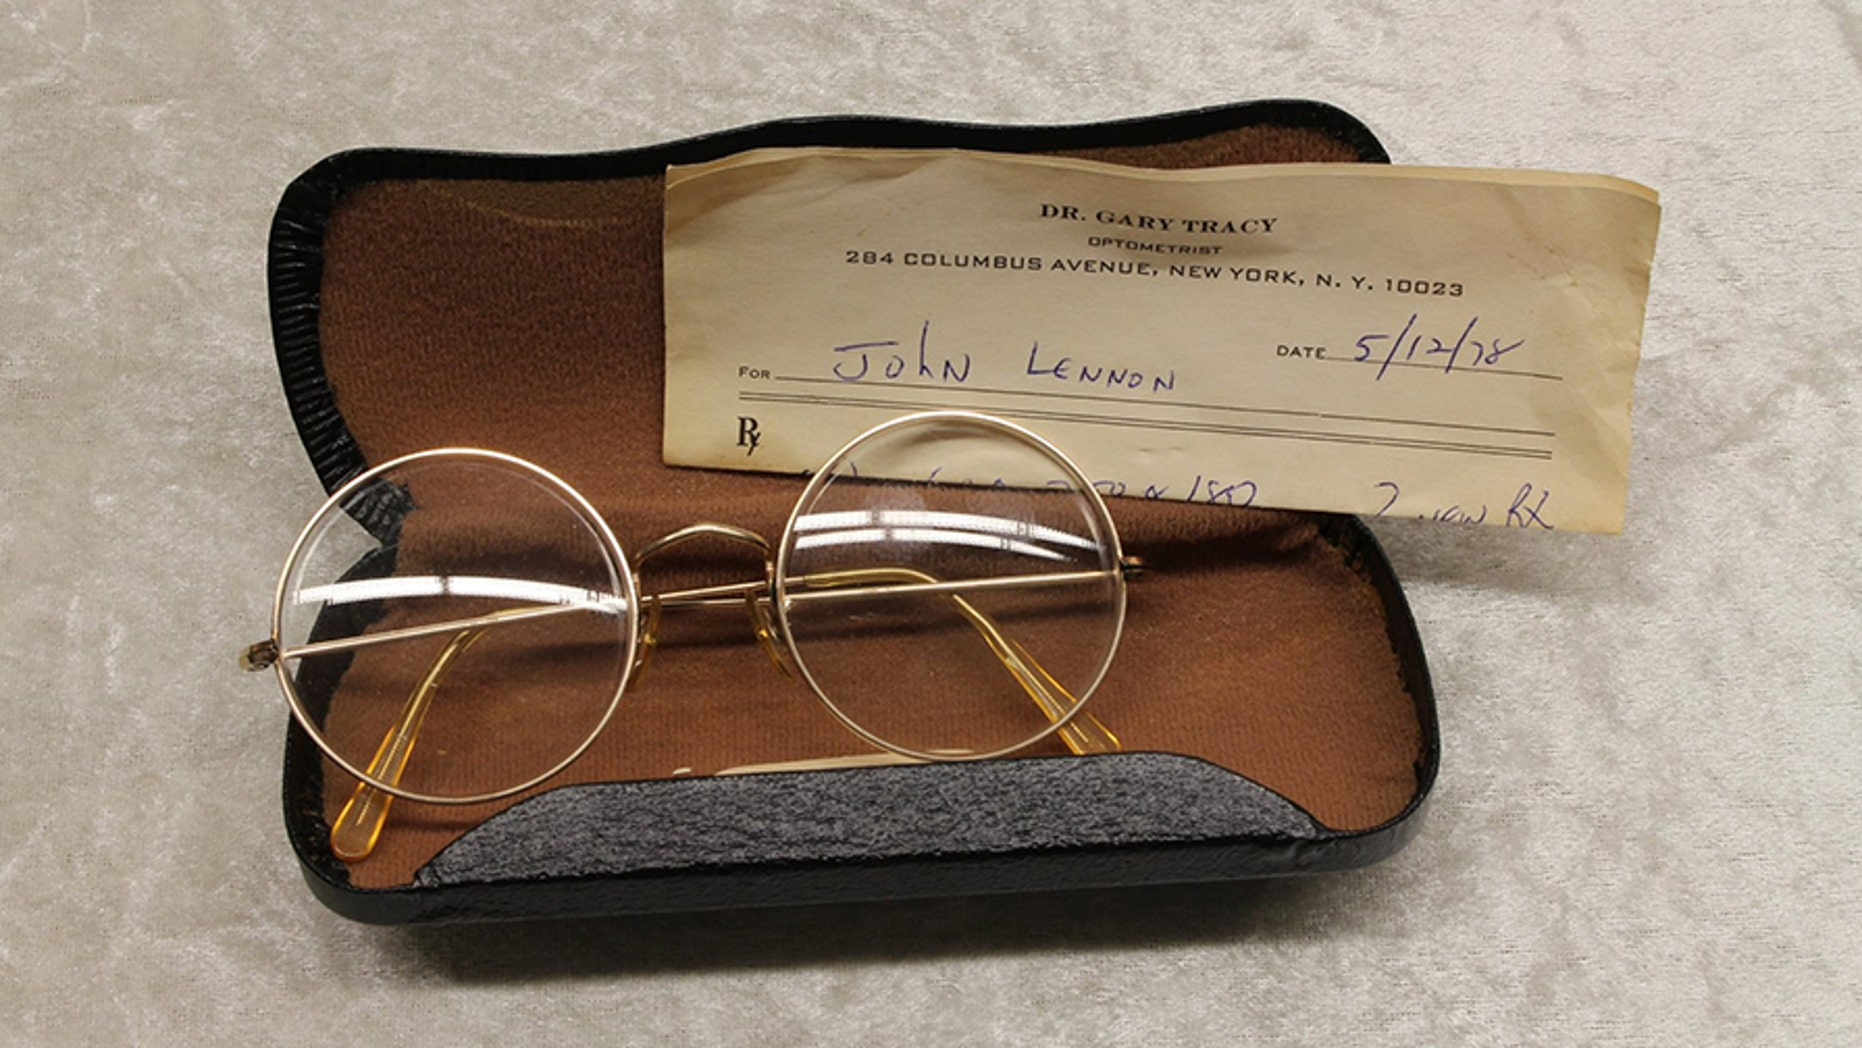 John Lennon's glasses with a prescription from optometrist Gary Tracy were displayed at the police headquarters in Berlin Tuesday.